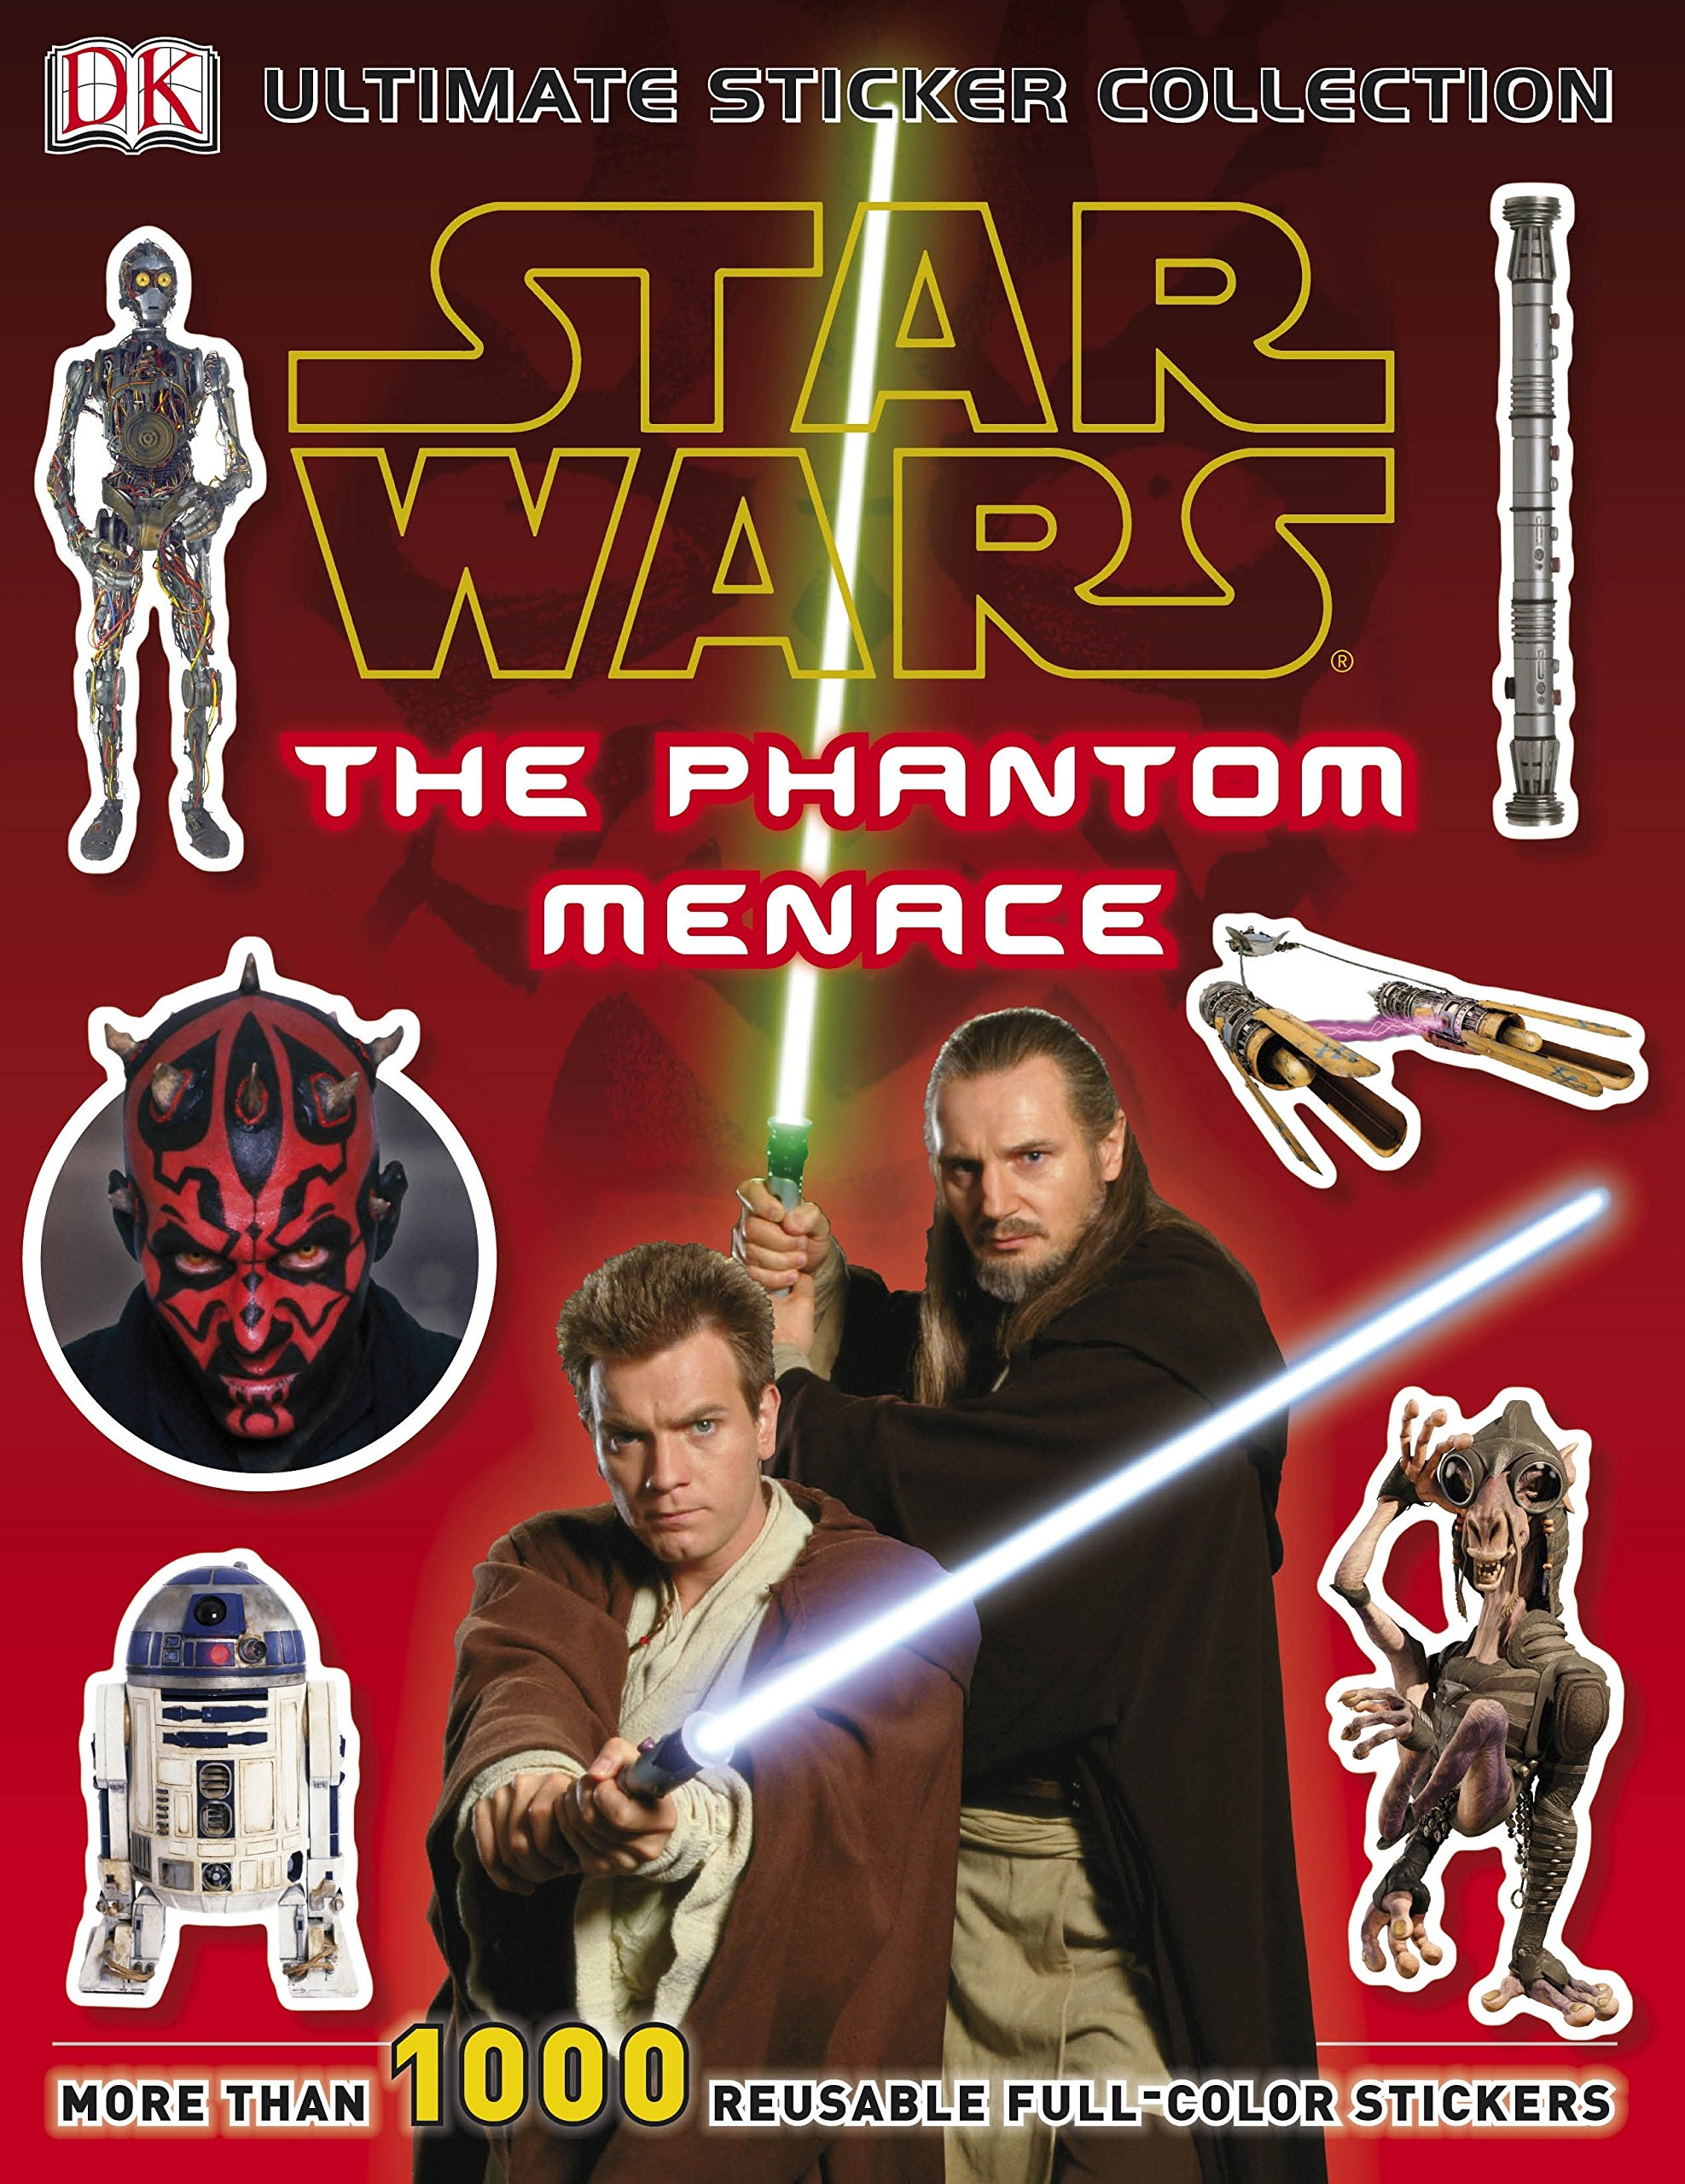 Star Wars The Phantom Menace Ultimate Sticker Collection